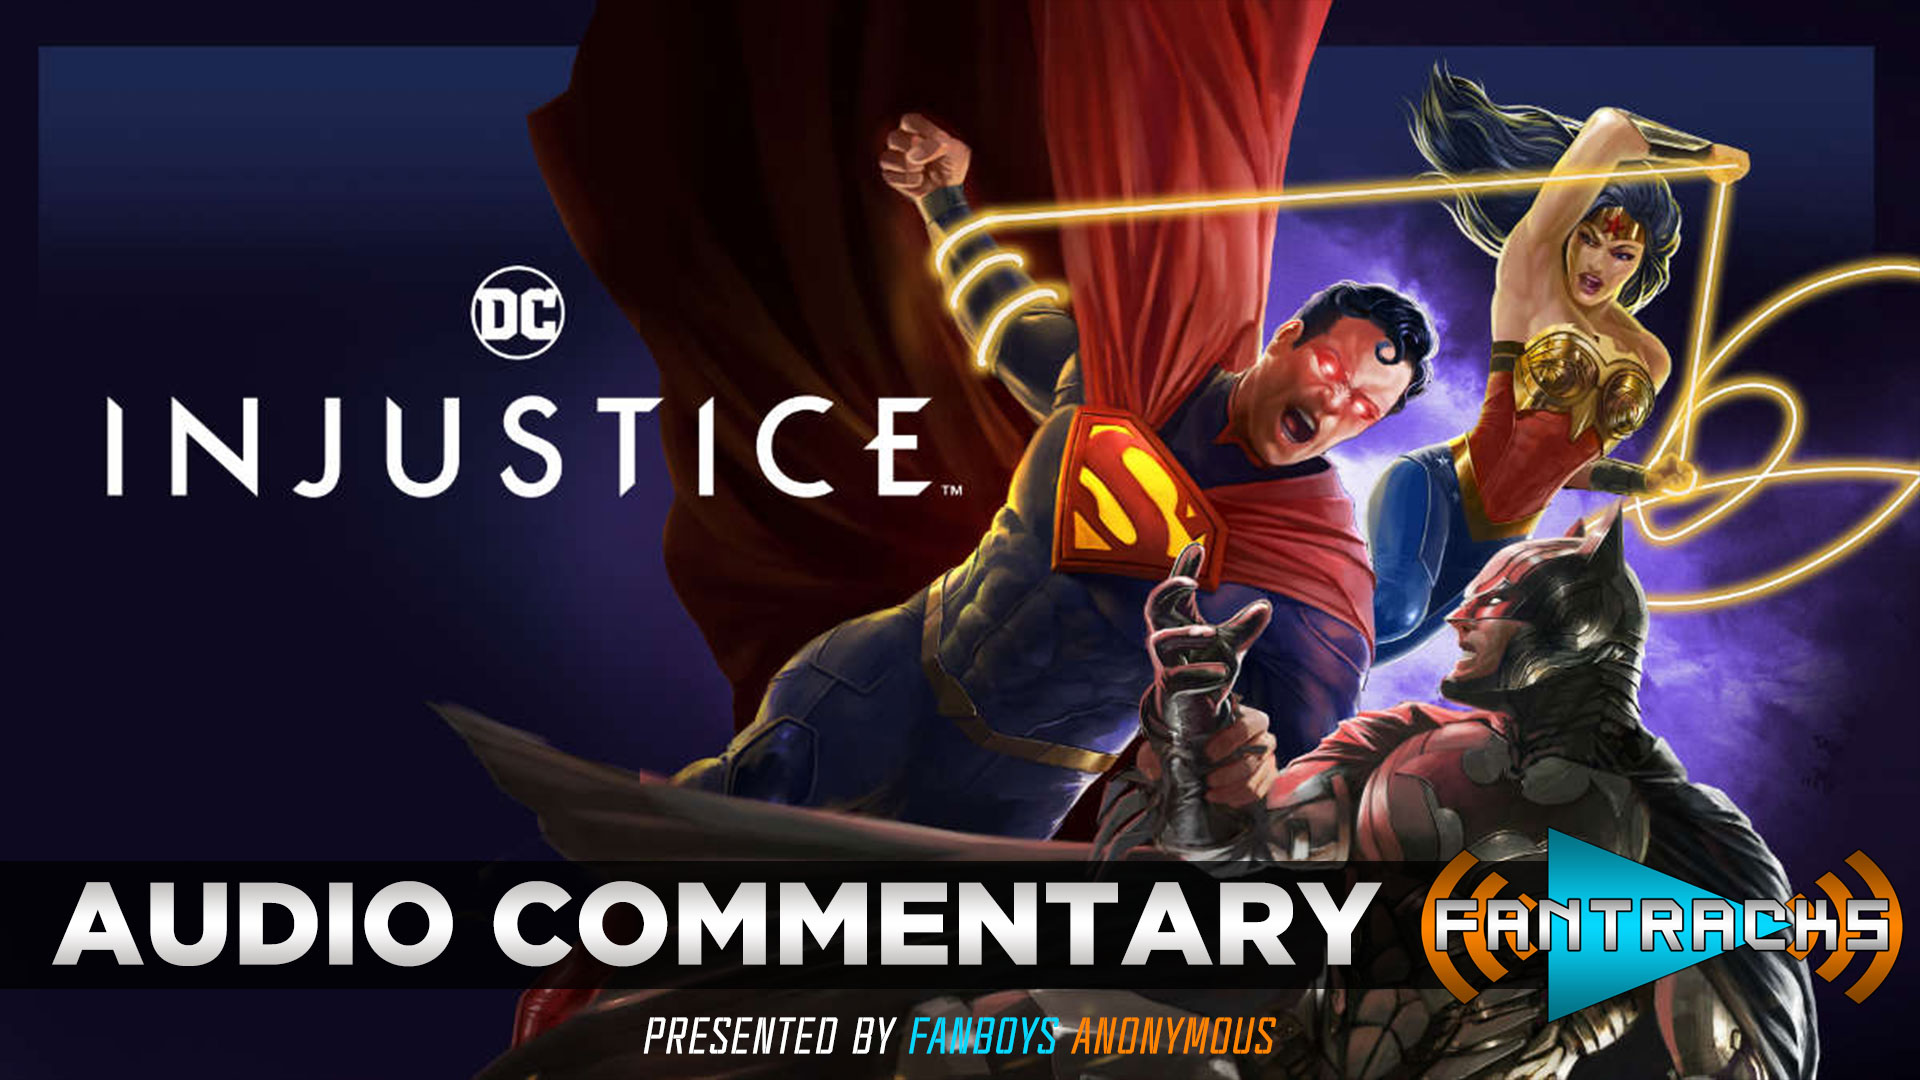 FanTracks Injustice audio commentary